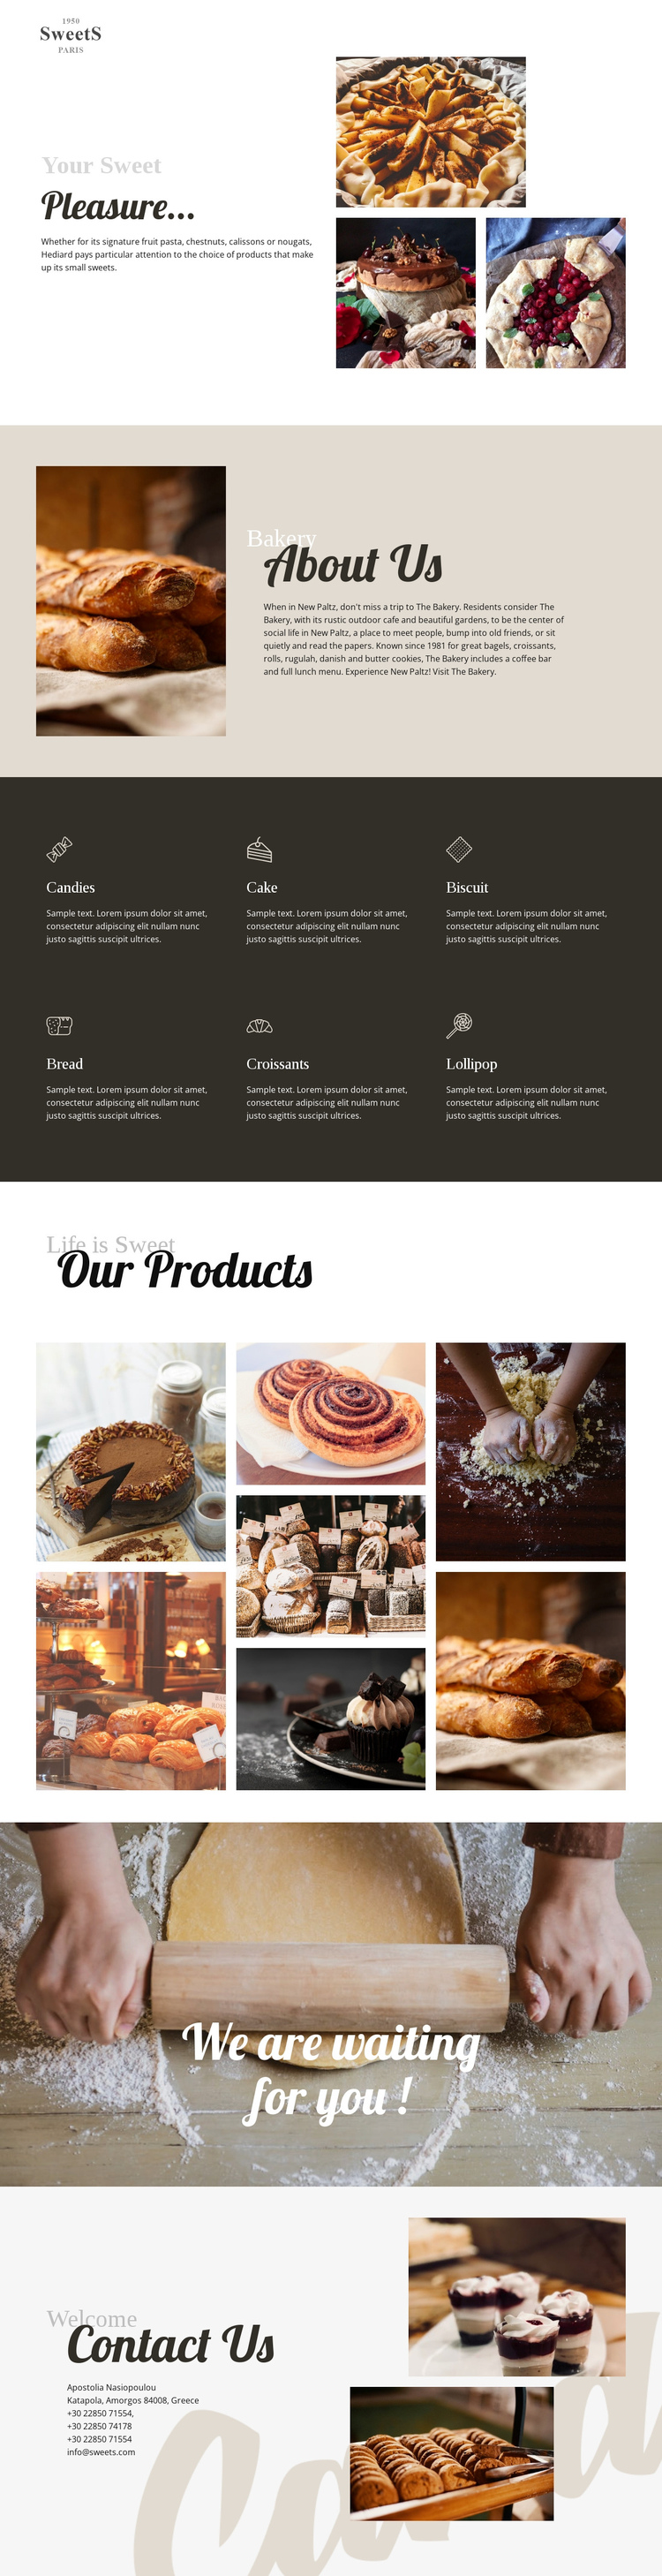 Cakes and baking food Website Builder Software